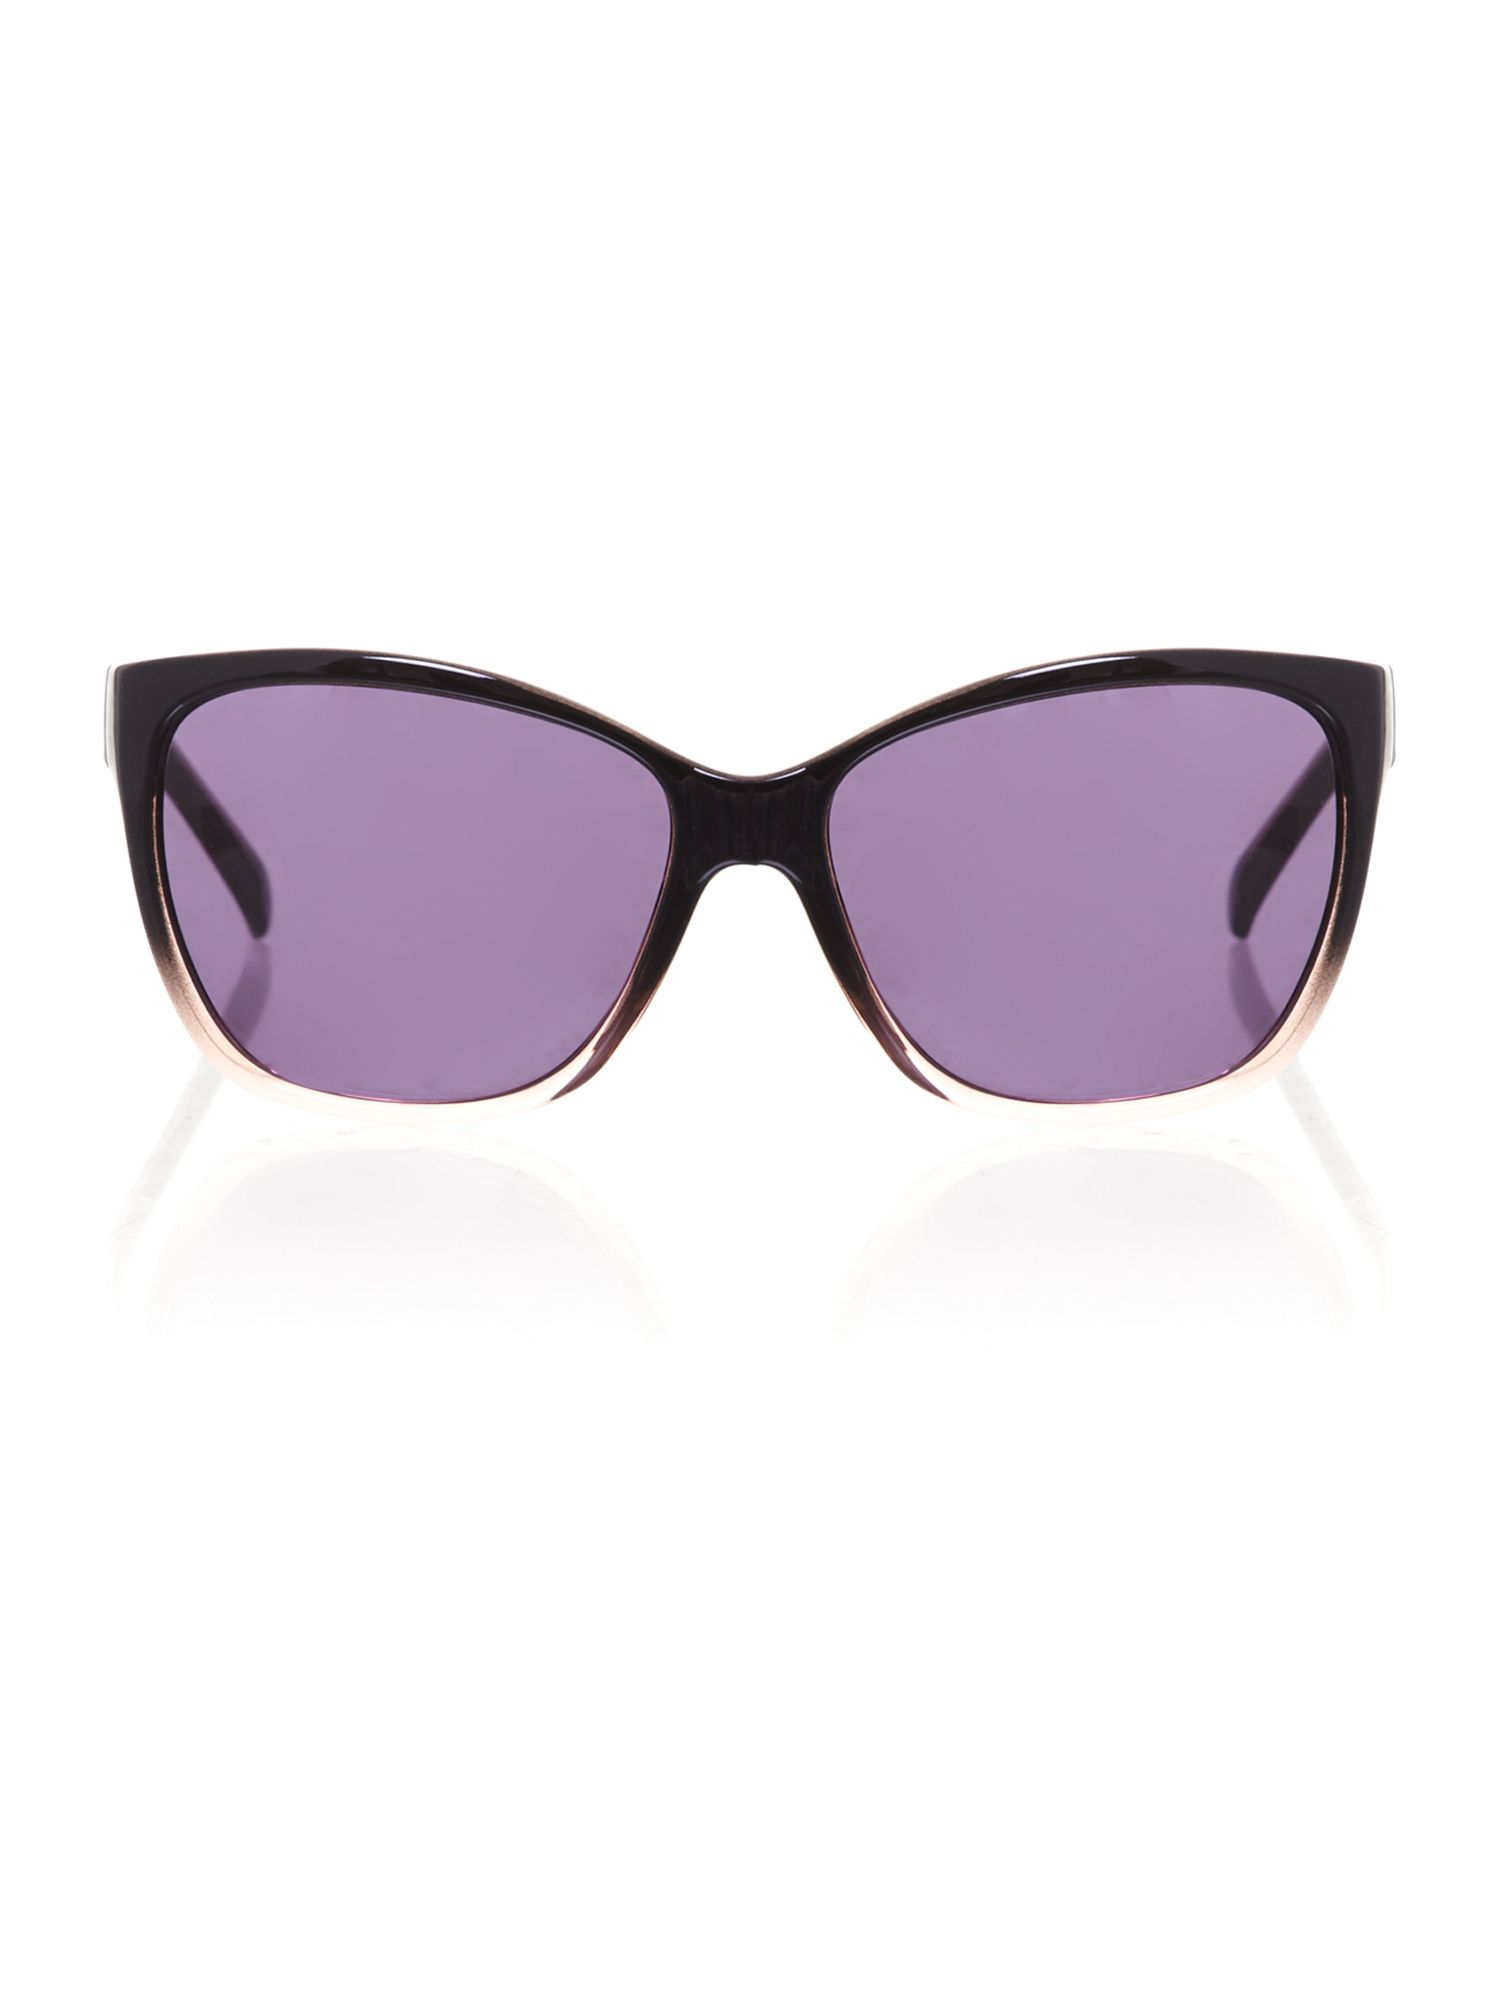 Ladies diellza black sunglasses